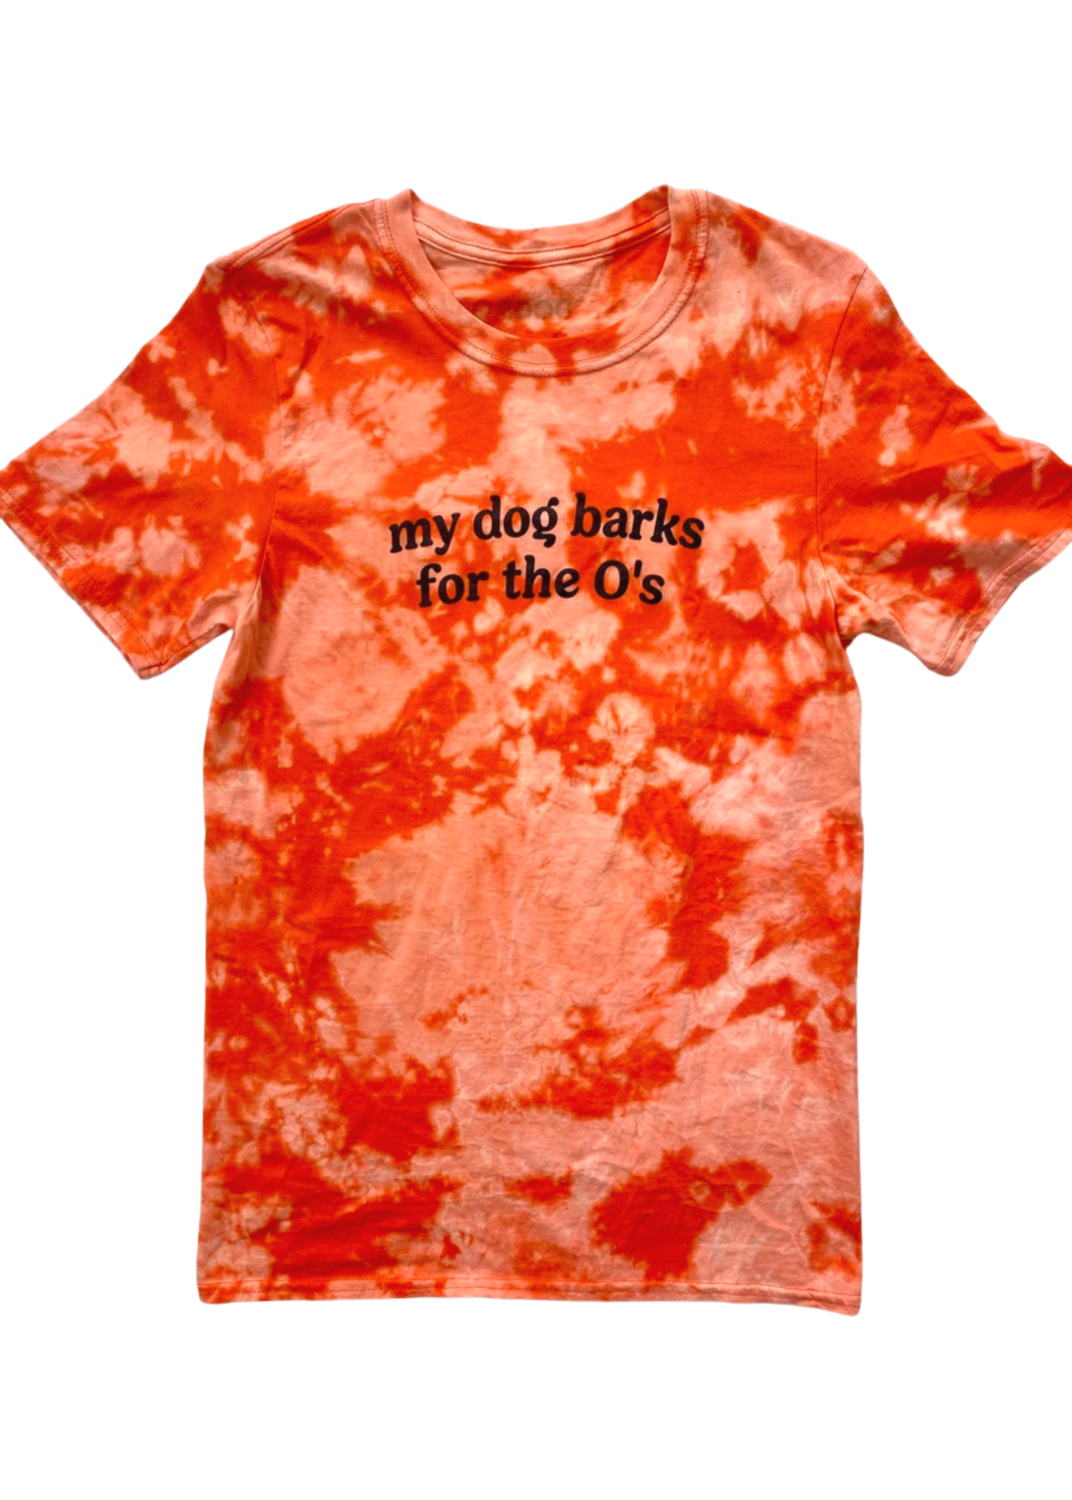 My Dog Barks for the O's Baltimore Orioles Orange Tie Dye Tee